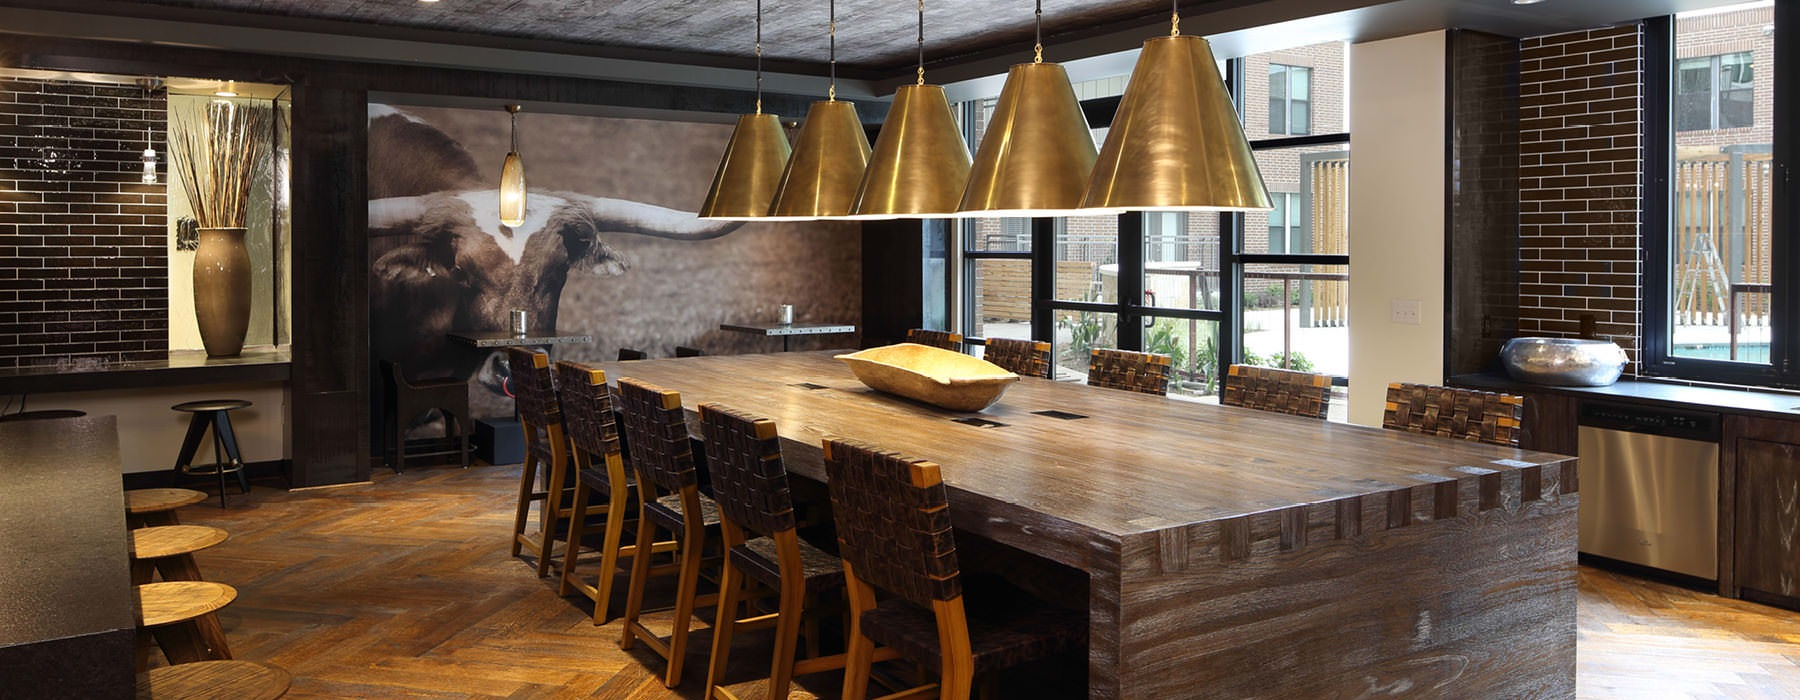 large windows and indoor lighting brighten dining area in clubhouse